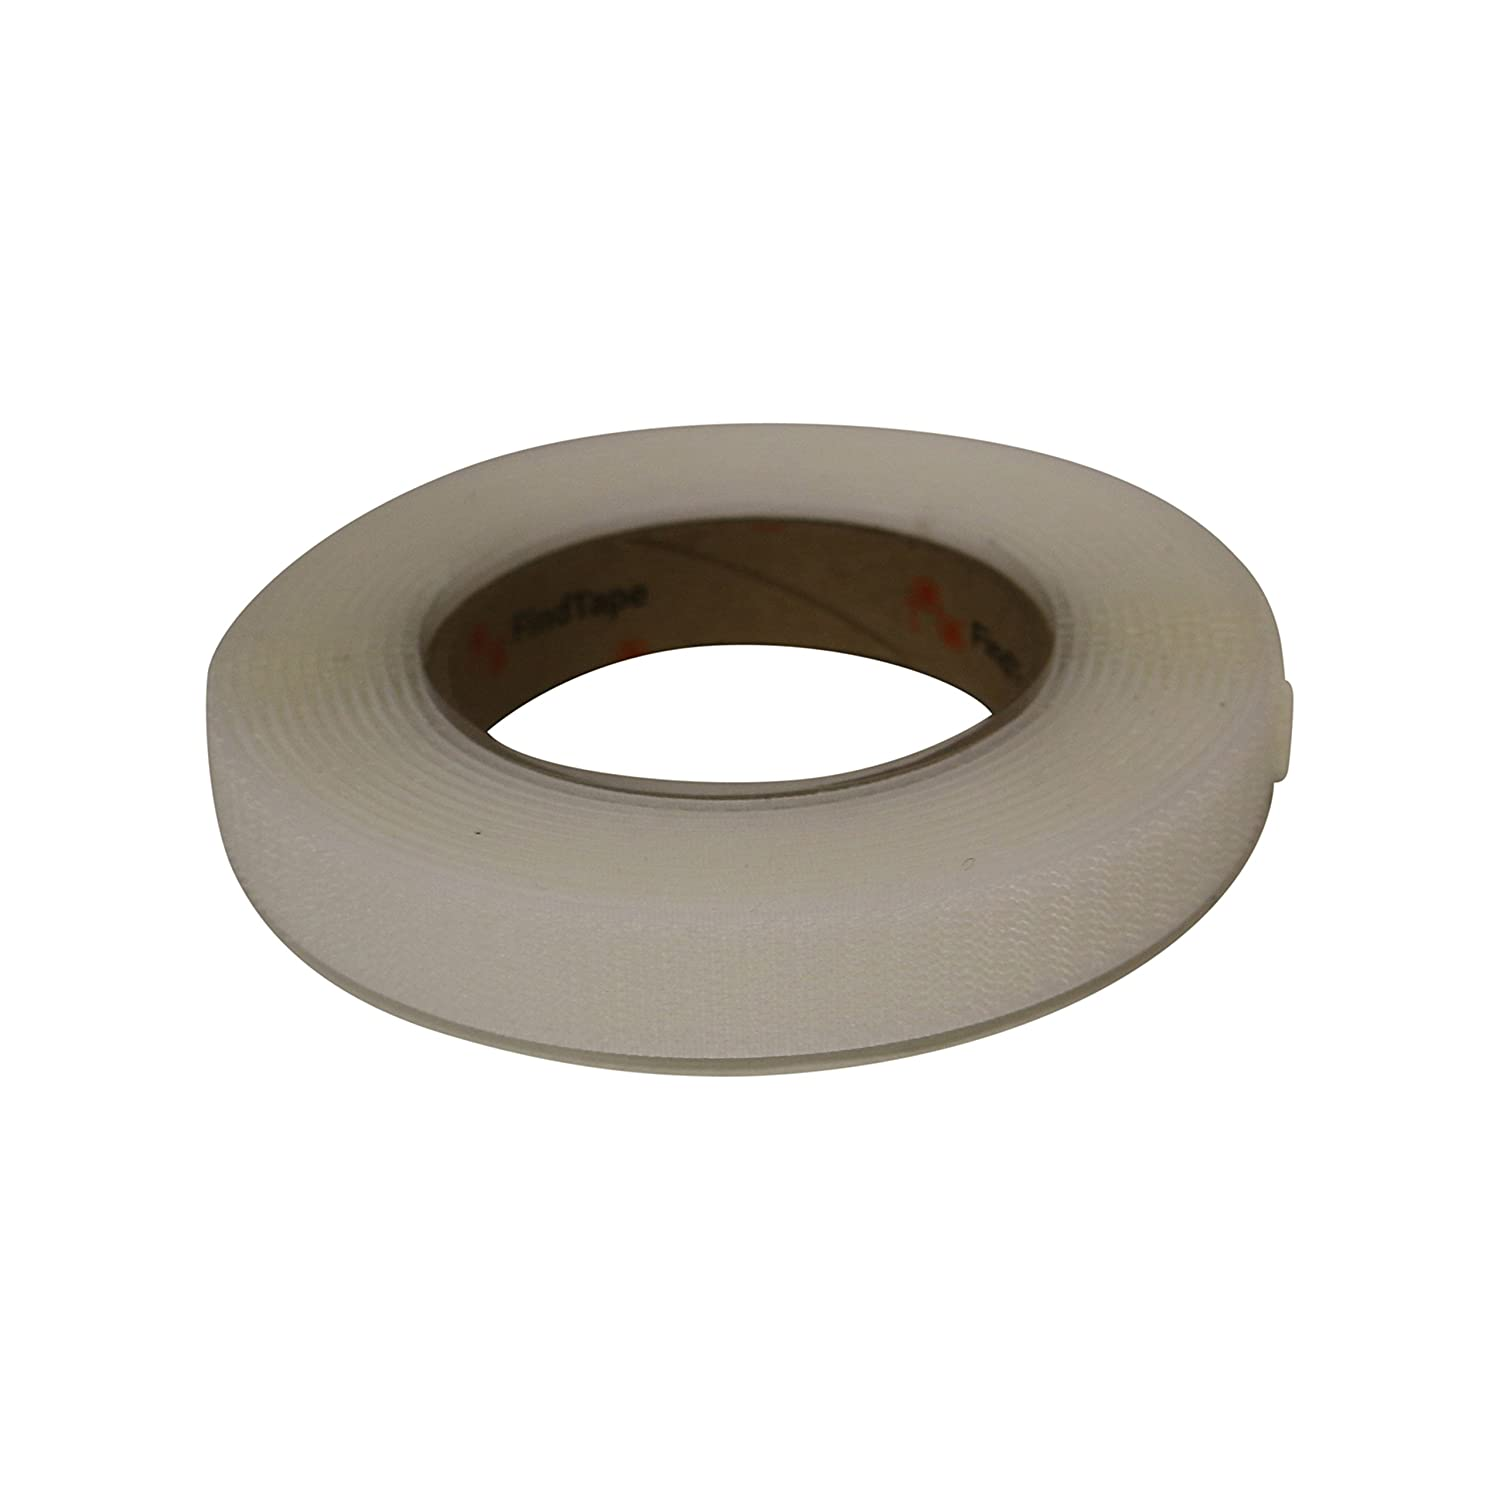 FindTape HL74-R/WHT07515H HL74-R Adhesive-Backed Hook-Side Only Rolls: 3/4' x 15 ft. / Hook-Side only, White